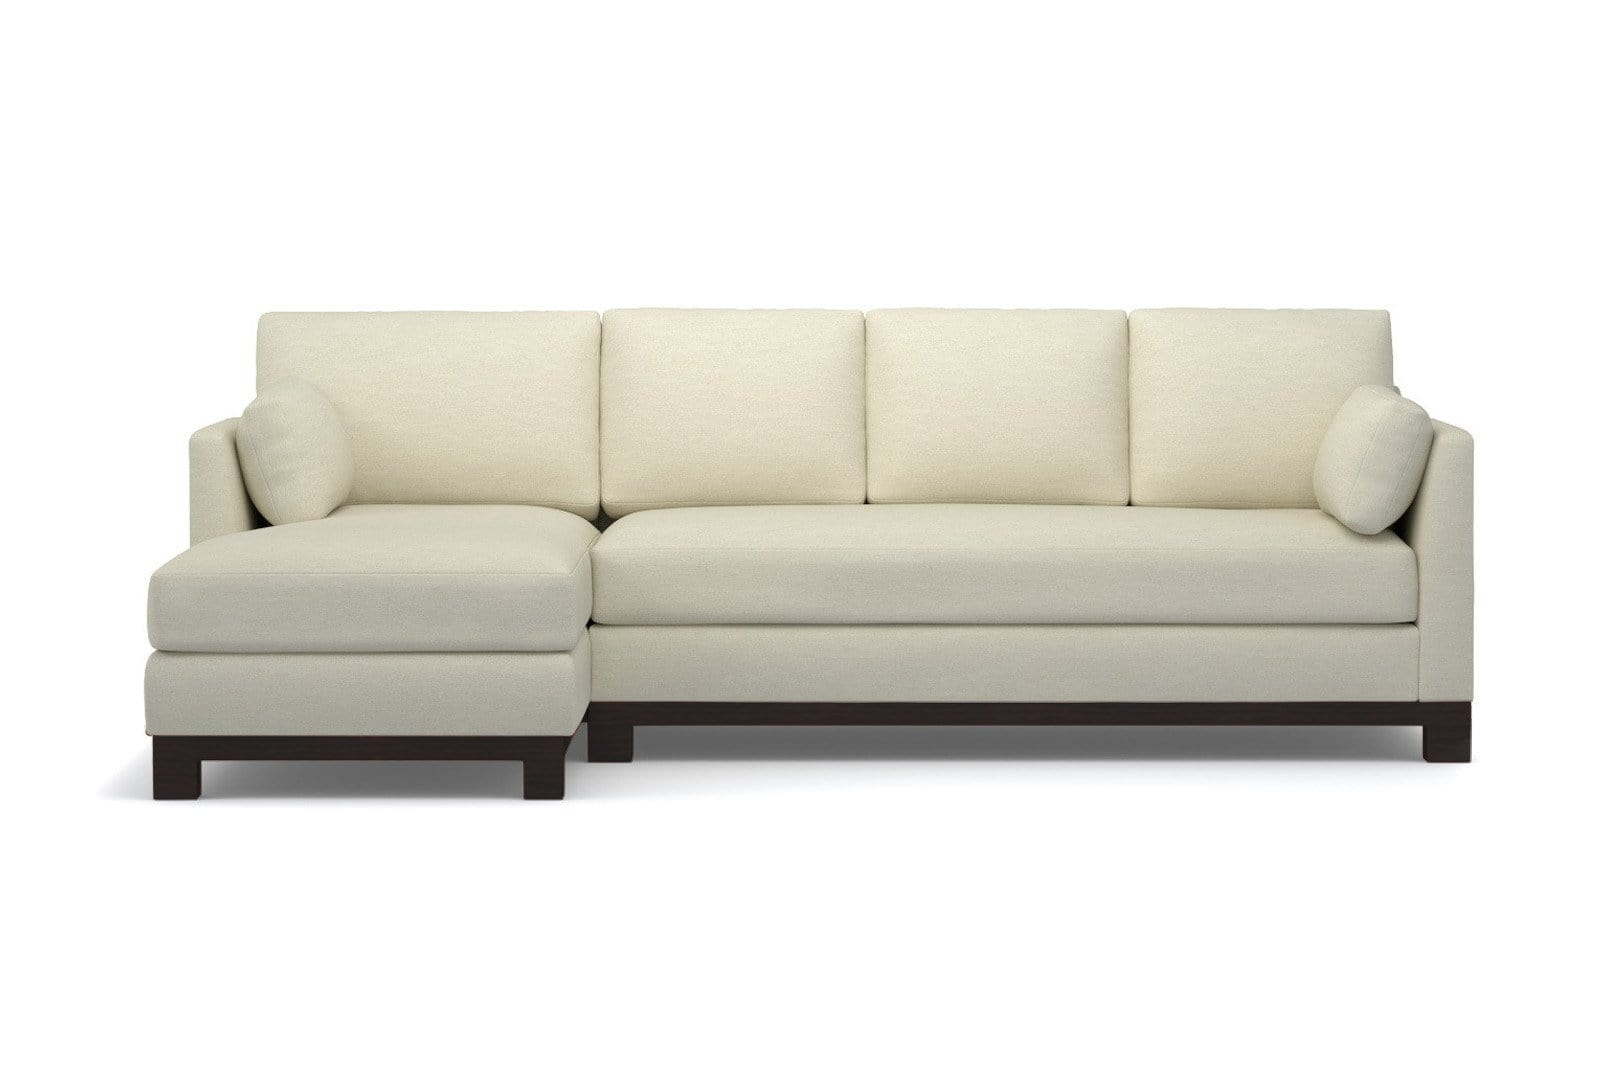 Avalon 2pc Sleeper Sectional - Cream - Pull Out Couch Bed Made in the USA - Sold by Apt2B